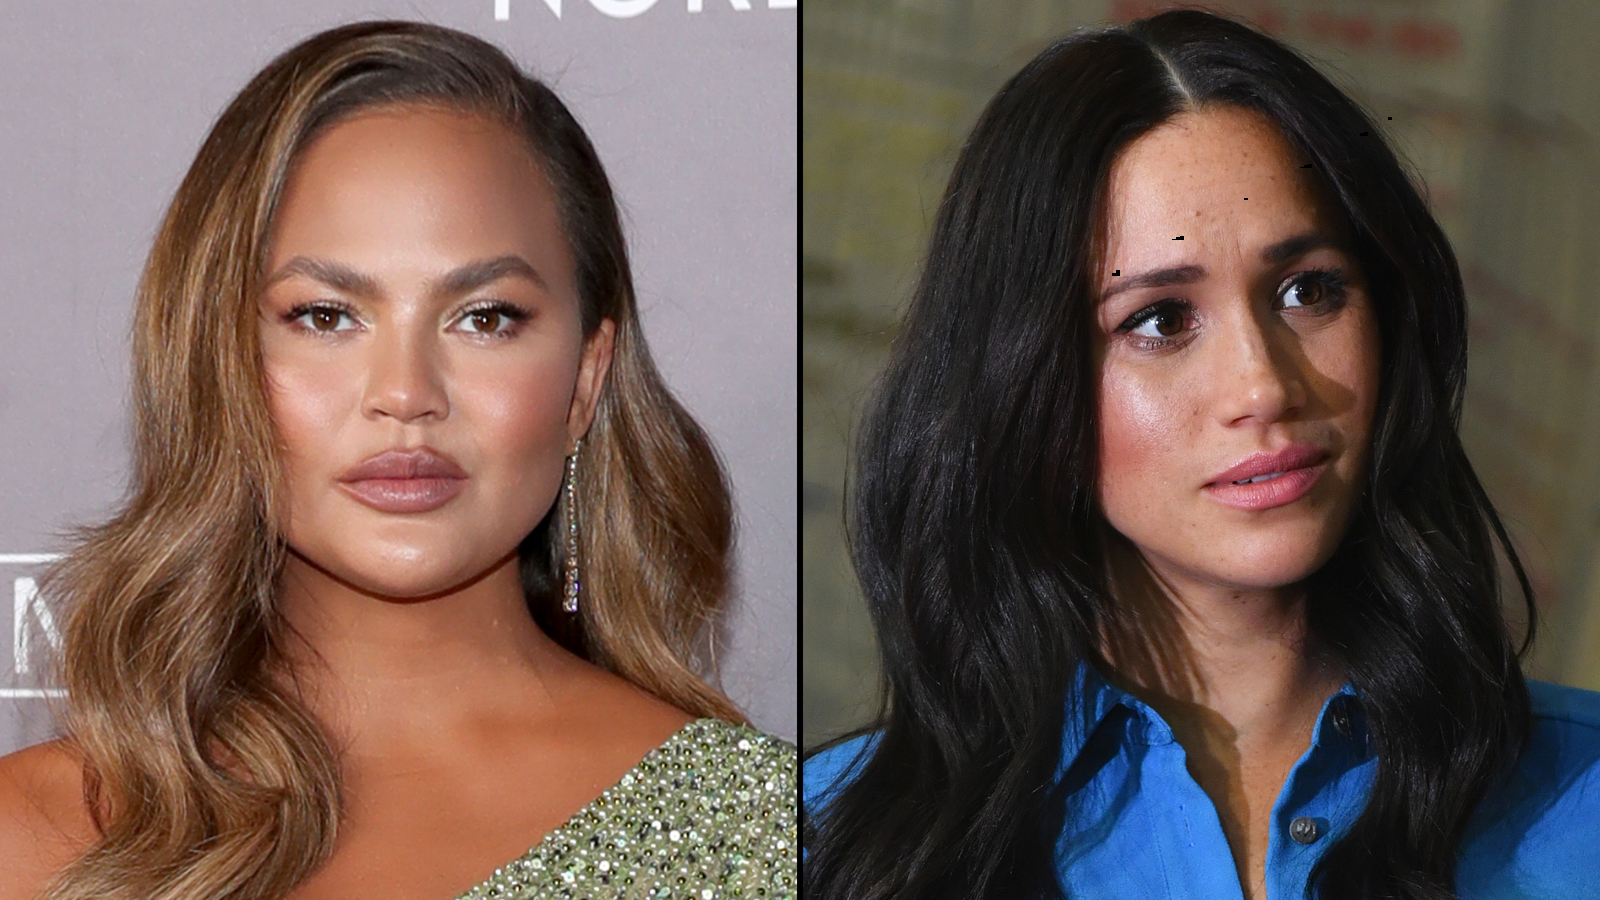 Chrissy Teigen reveals friendship with Meghan, the Duchess of Sussex